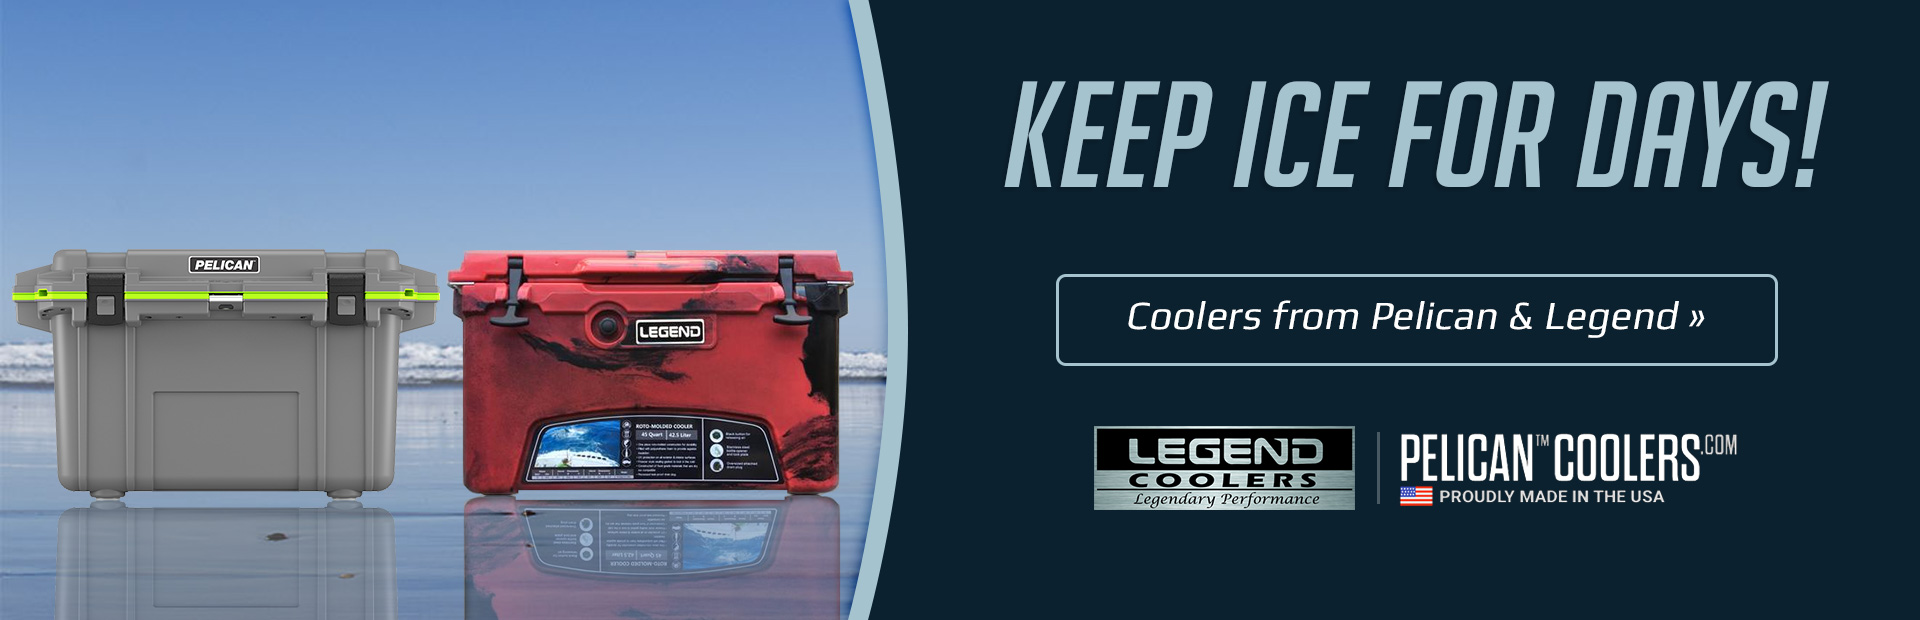 Keep ice for days with coolers from Pelican and Legend.